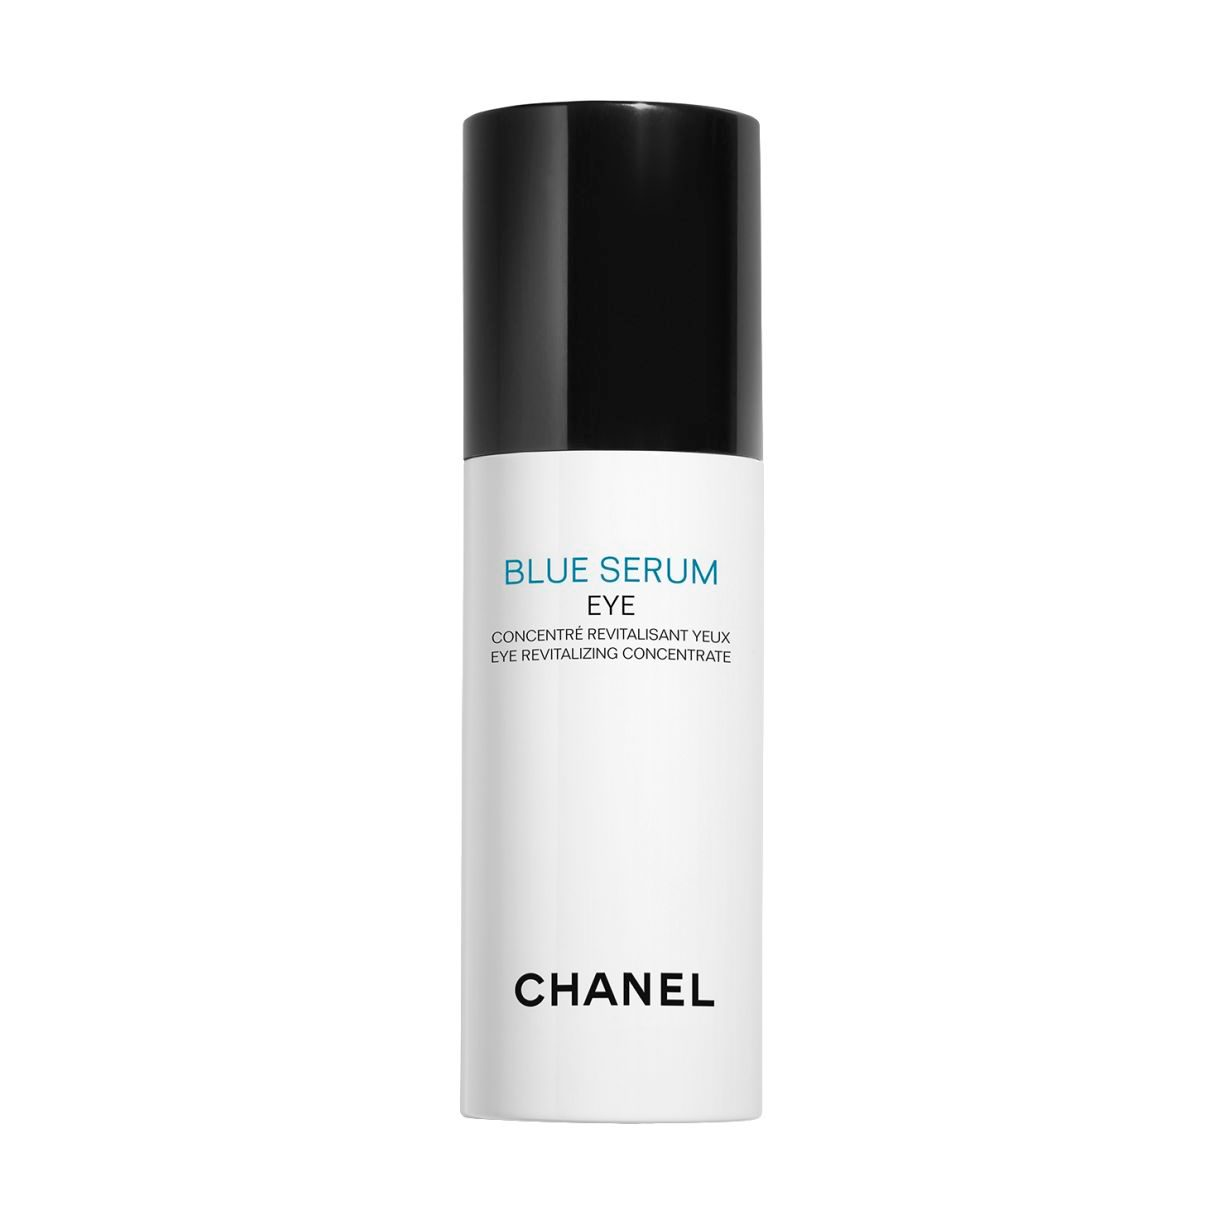 BLUE SERUM EYE INGREDIENTES DE LONGEVIDAD QUE CONFORMAN LA DIETA DE LAS ZONAS AZULES.